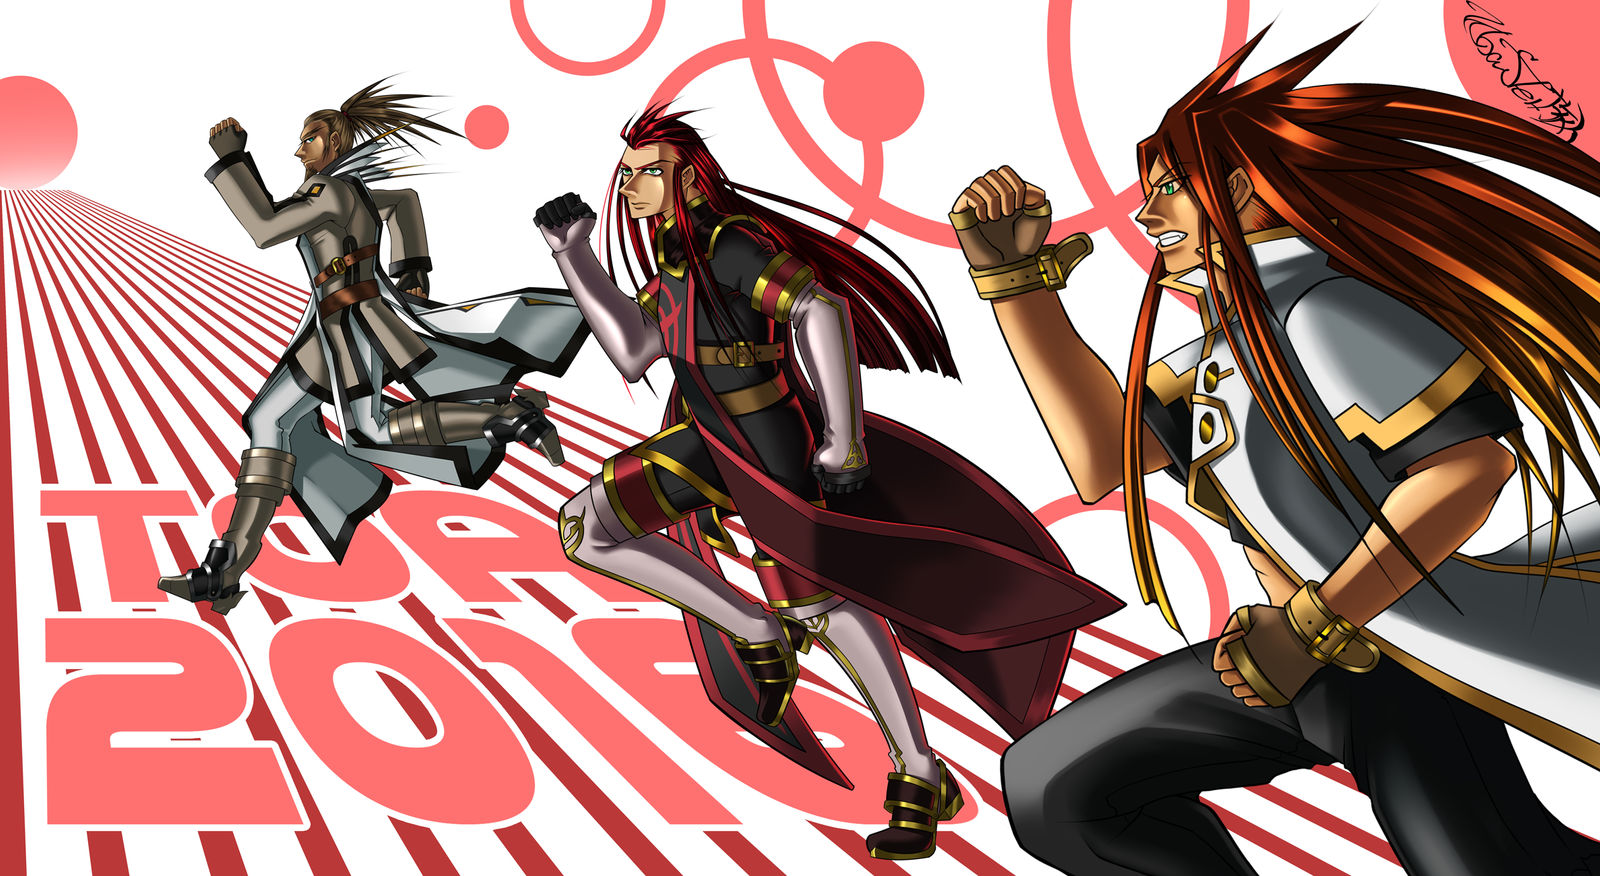 Wallpaper Of Tales Of The Abyss 2016 By Xbasler Issei 2082 On